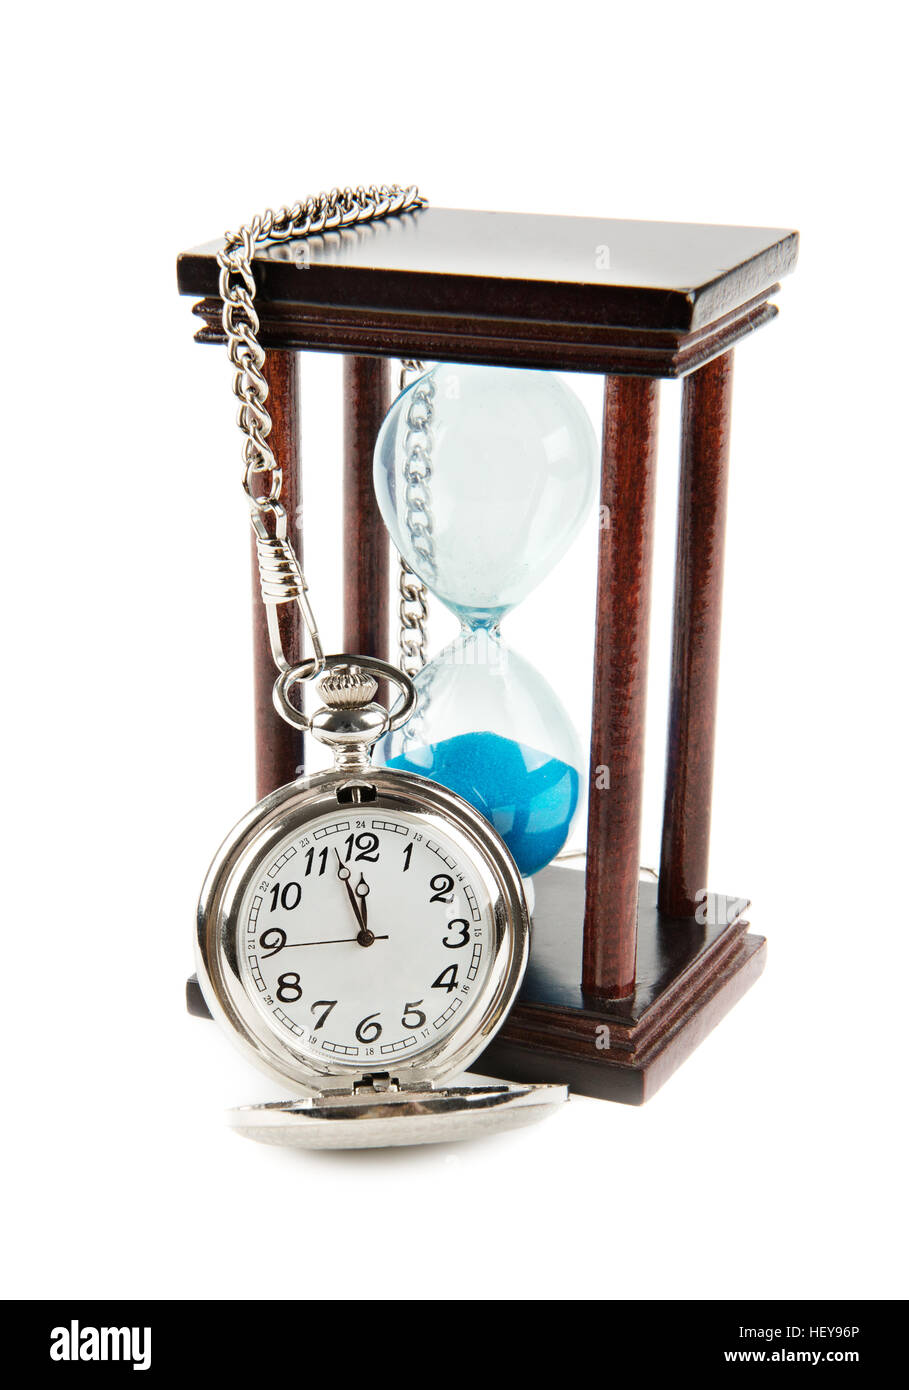 hourglass and a pocket watch isolated on white background - Stock Image